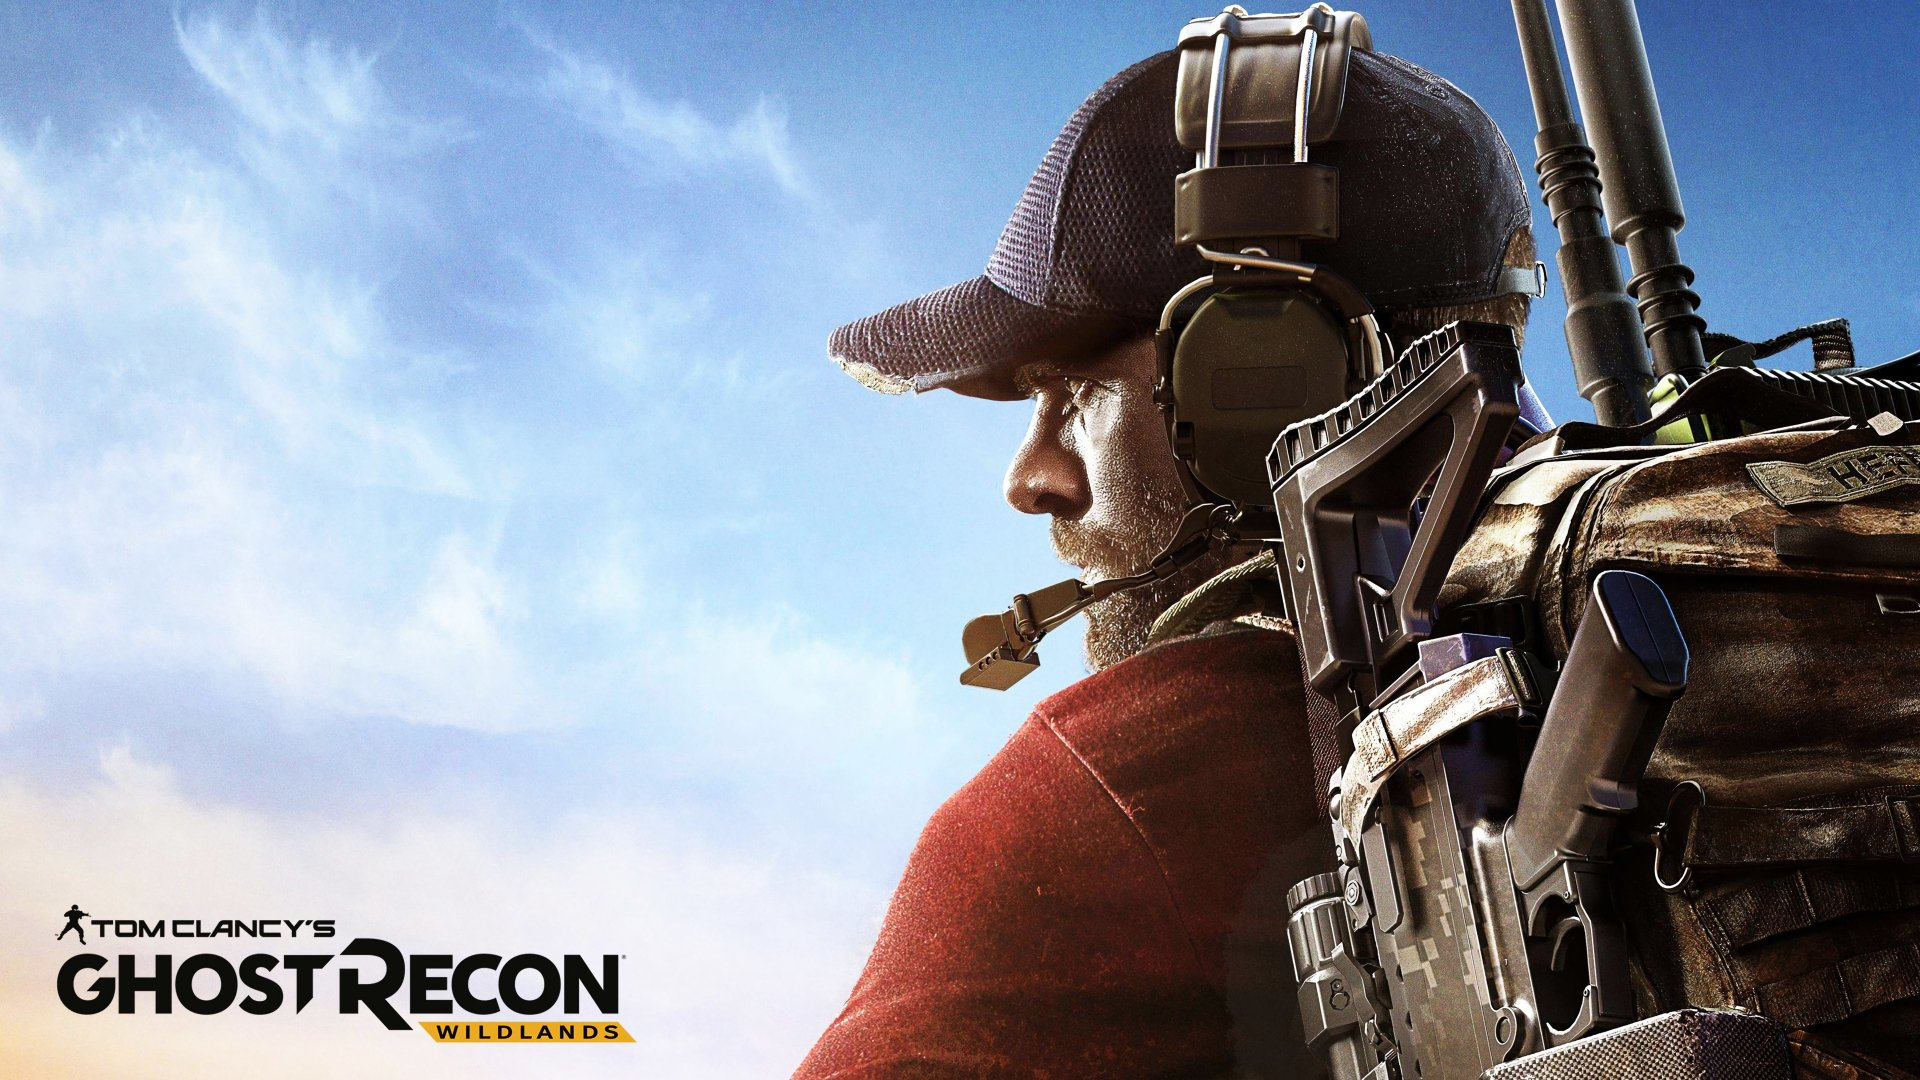 Video Game - Tom Clancy's Ghost Recon Wildlands  Wallpaper